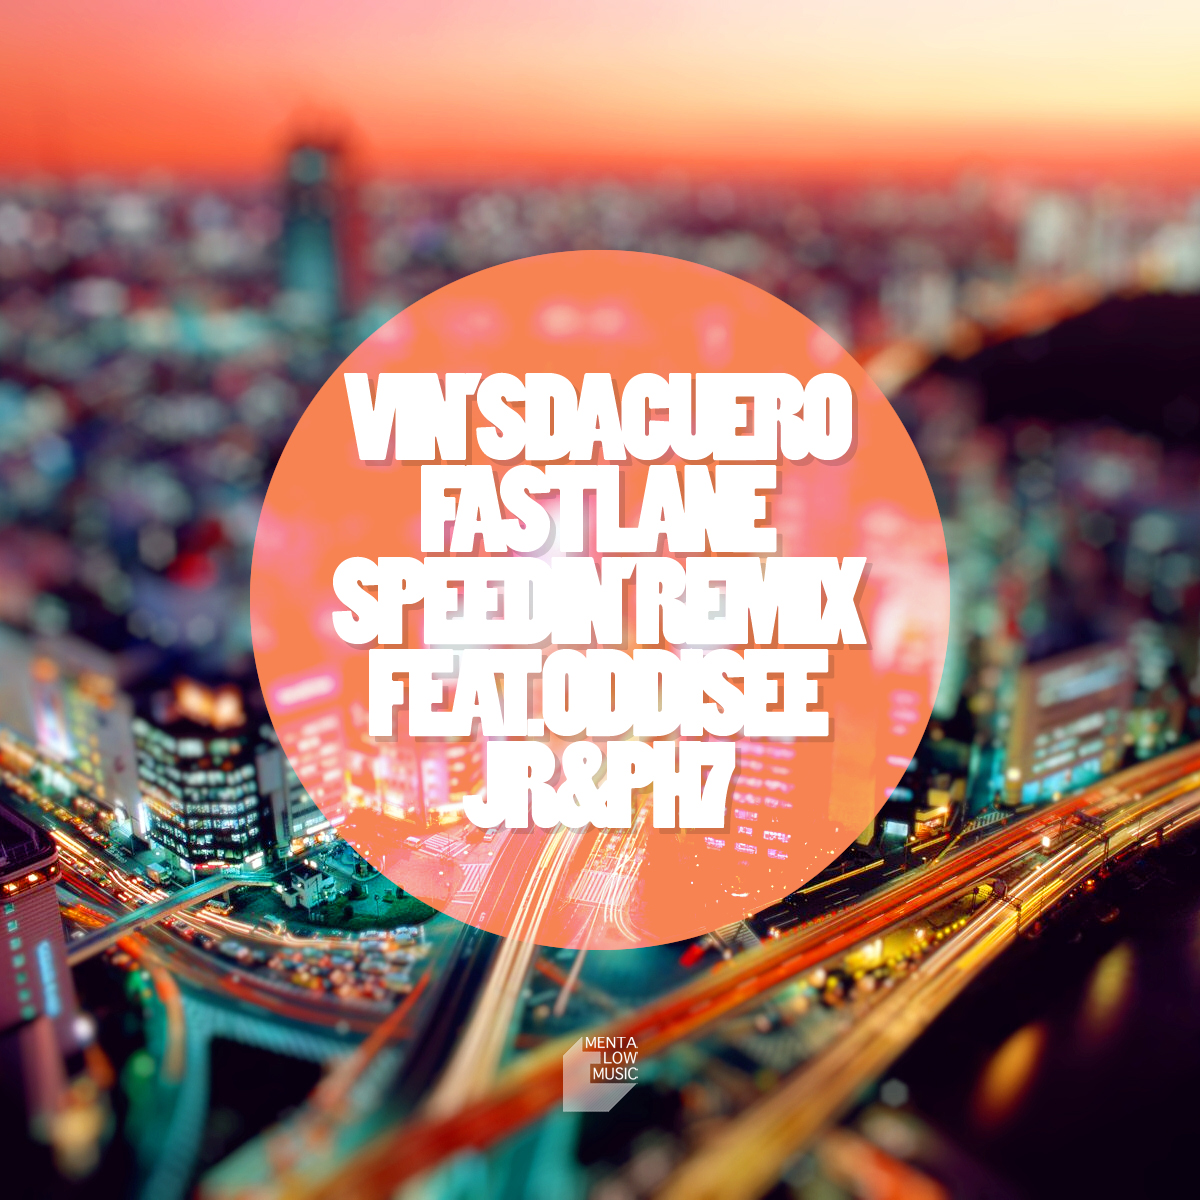 Free MP3: JR & PH7 – Fast Lane Speedin' ft. Oddisee (Vin'S da Cuero's Frustration Remix)